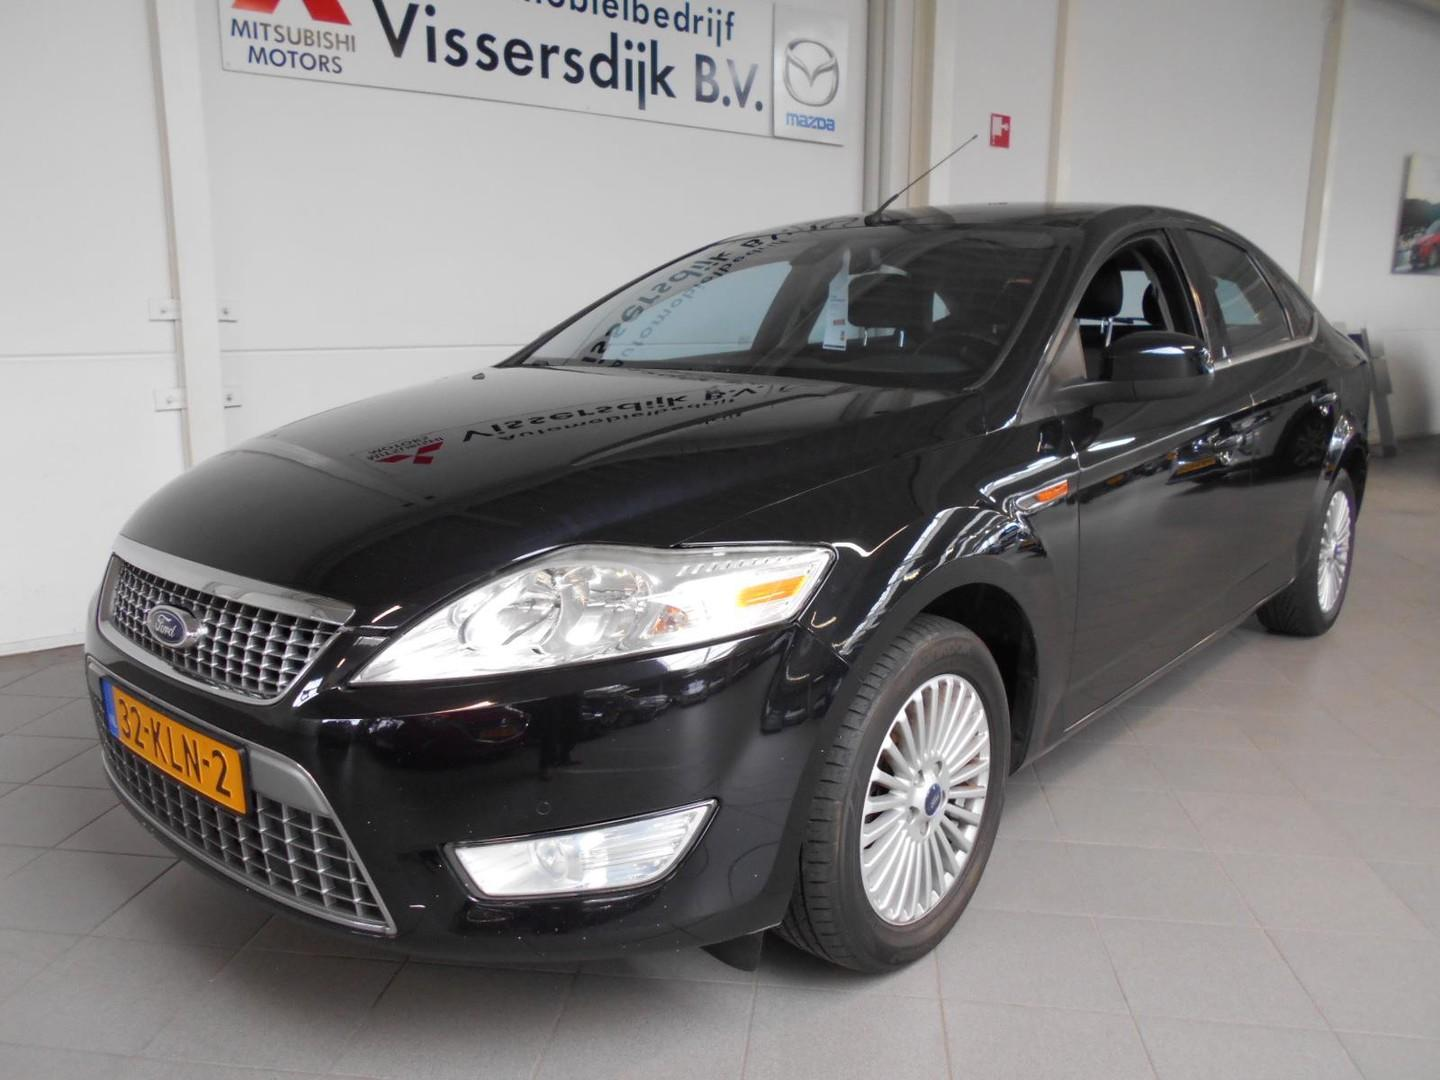 Ford Mondeo 2.0-16v limited nieuw binnen!